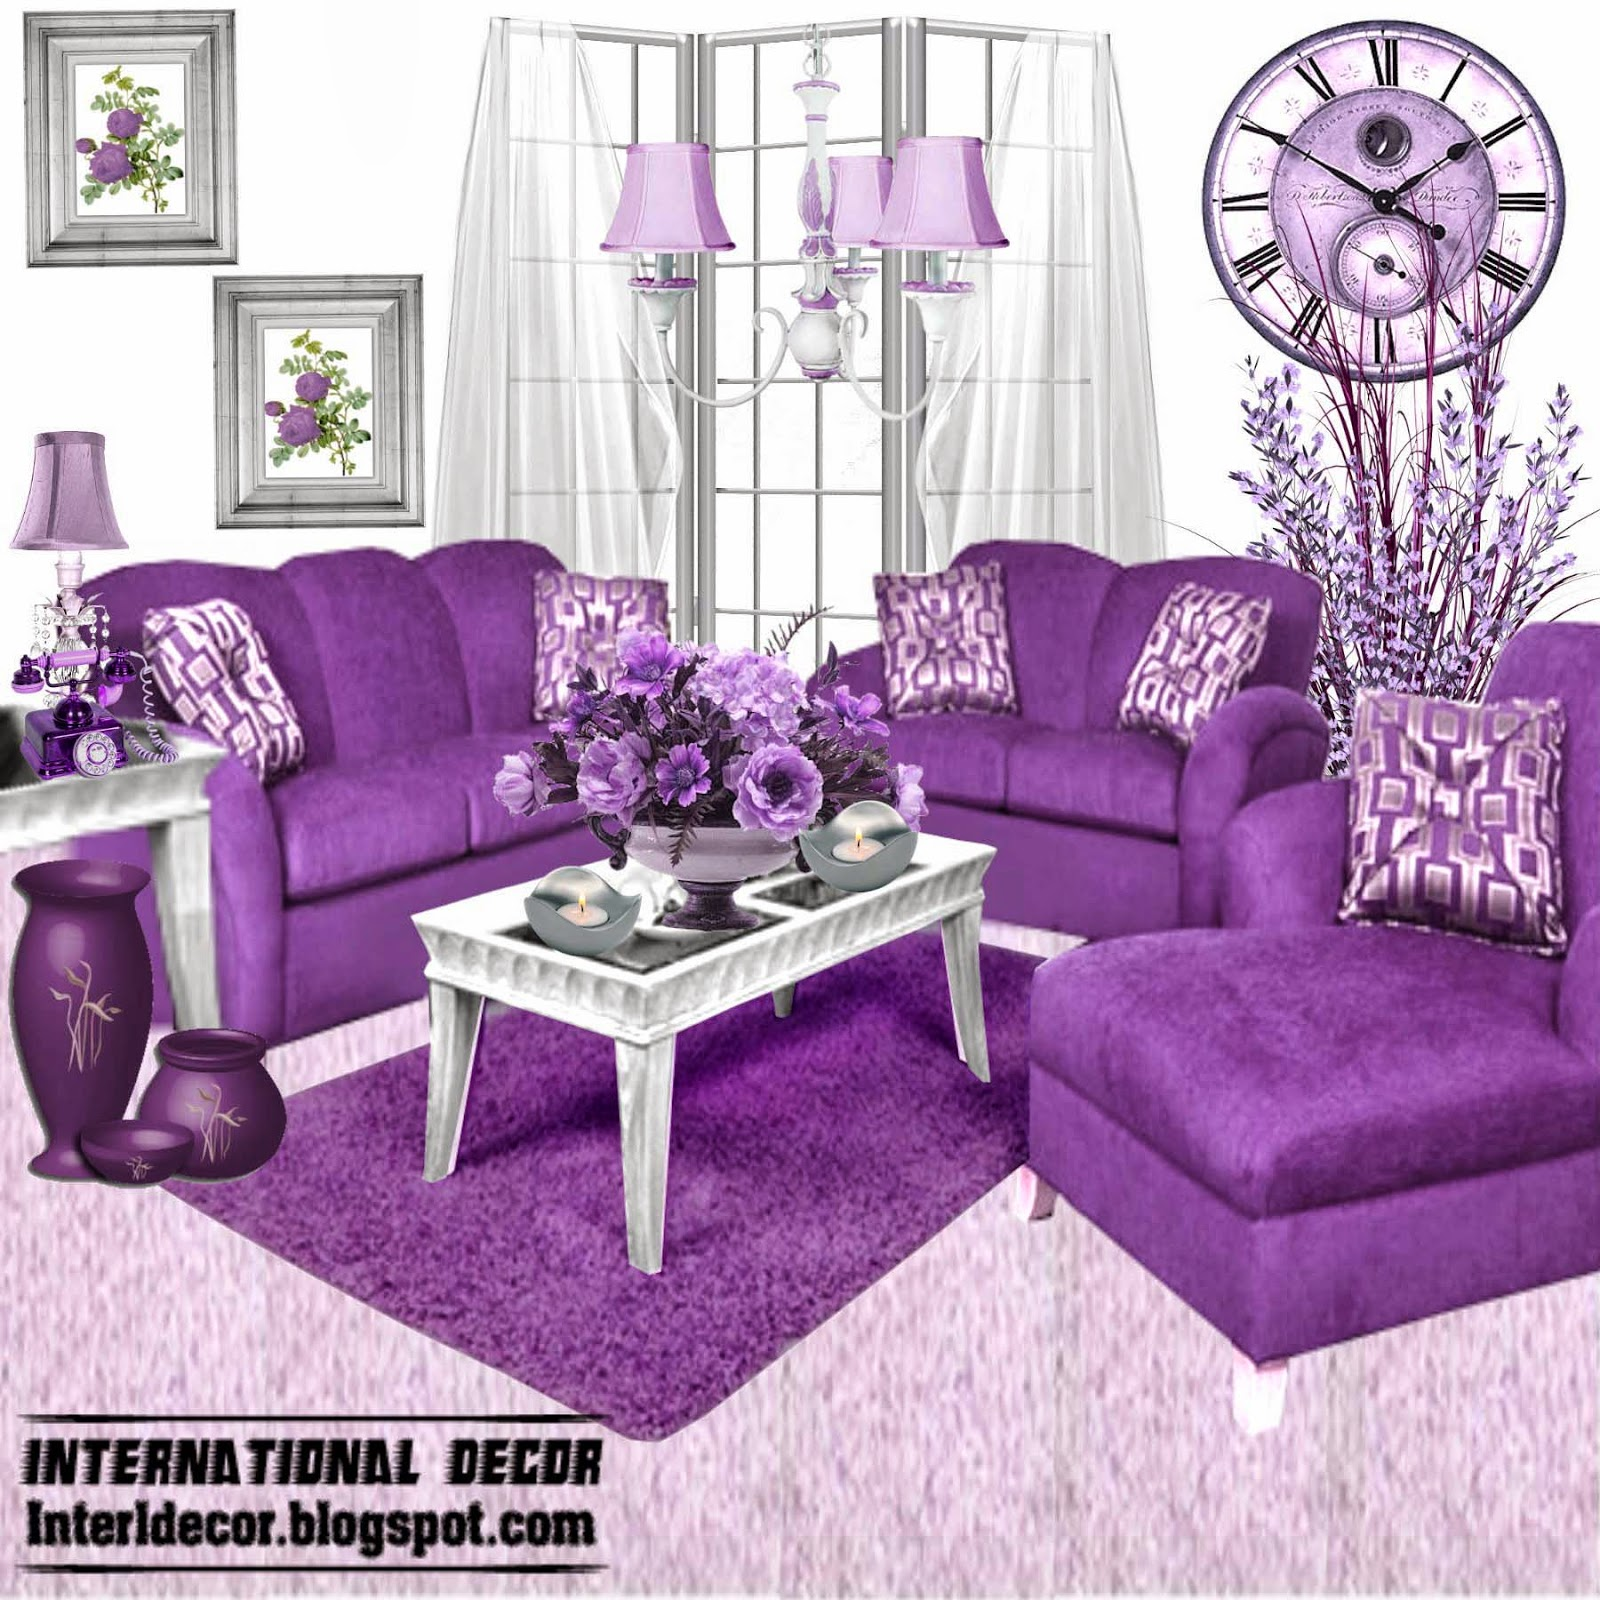 Purple furniture for the home pinterest purple for Living room farnichar